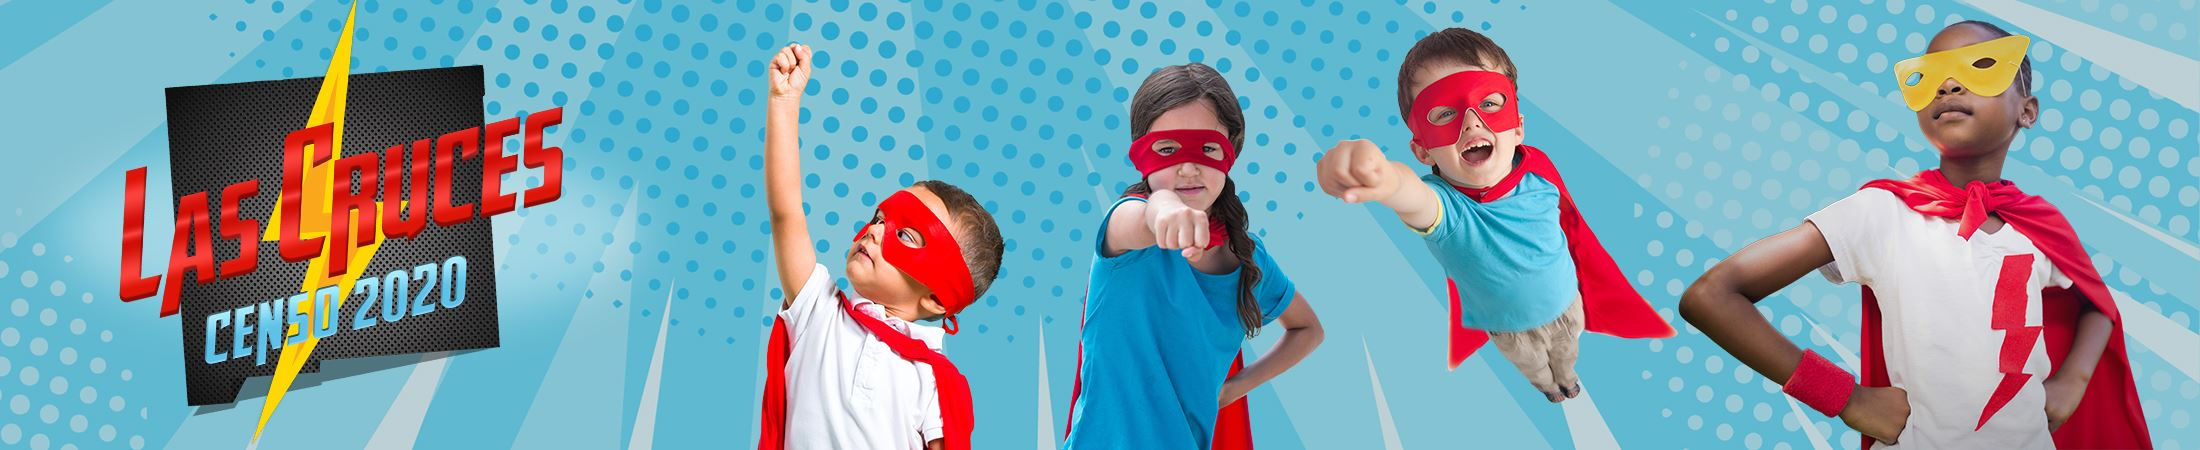 Census Banner with kids dressed as superhero, logo is in Spanish